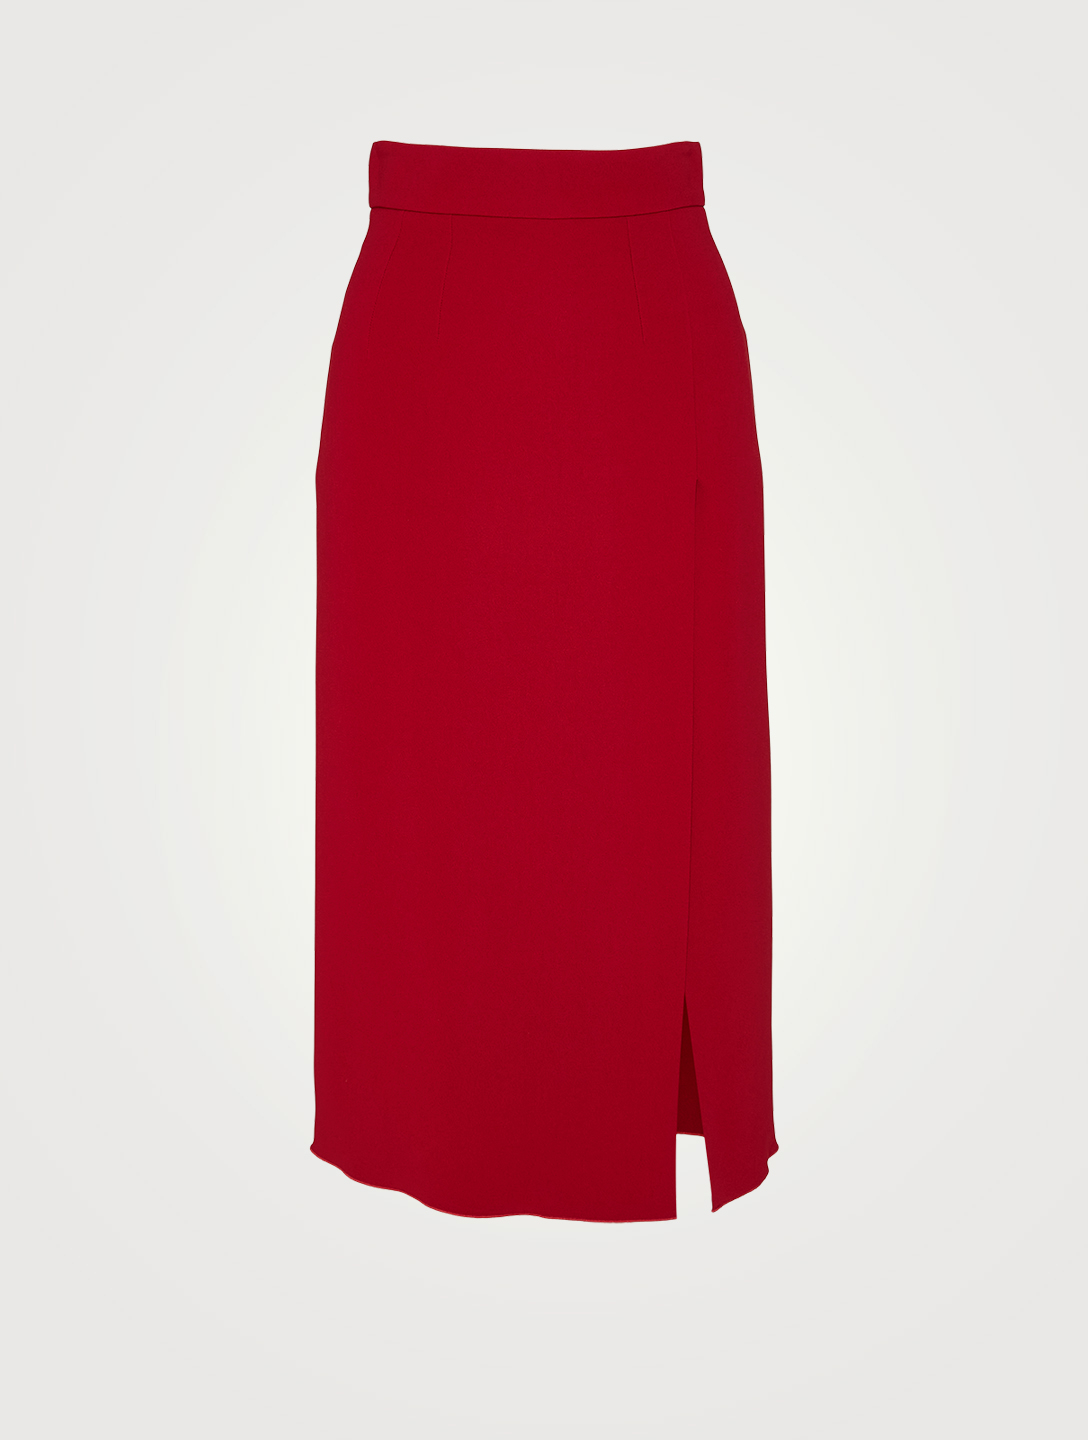 DOLCE & GABBANA Cady Midi Skirt With Side Slit Women's Red